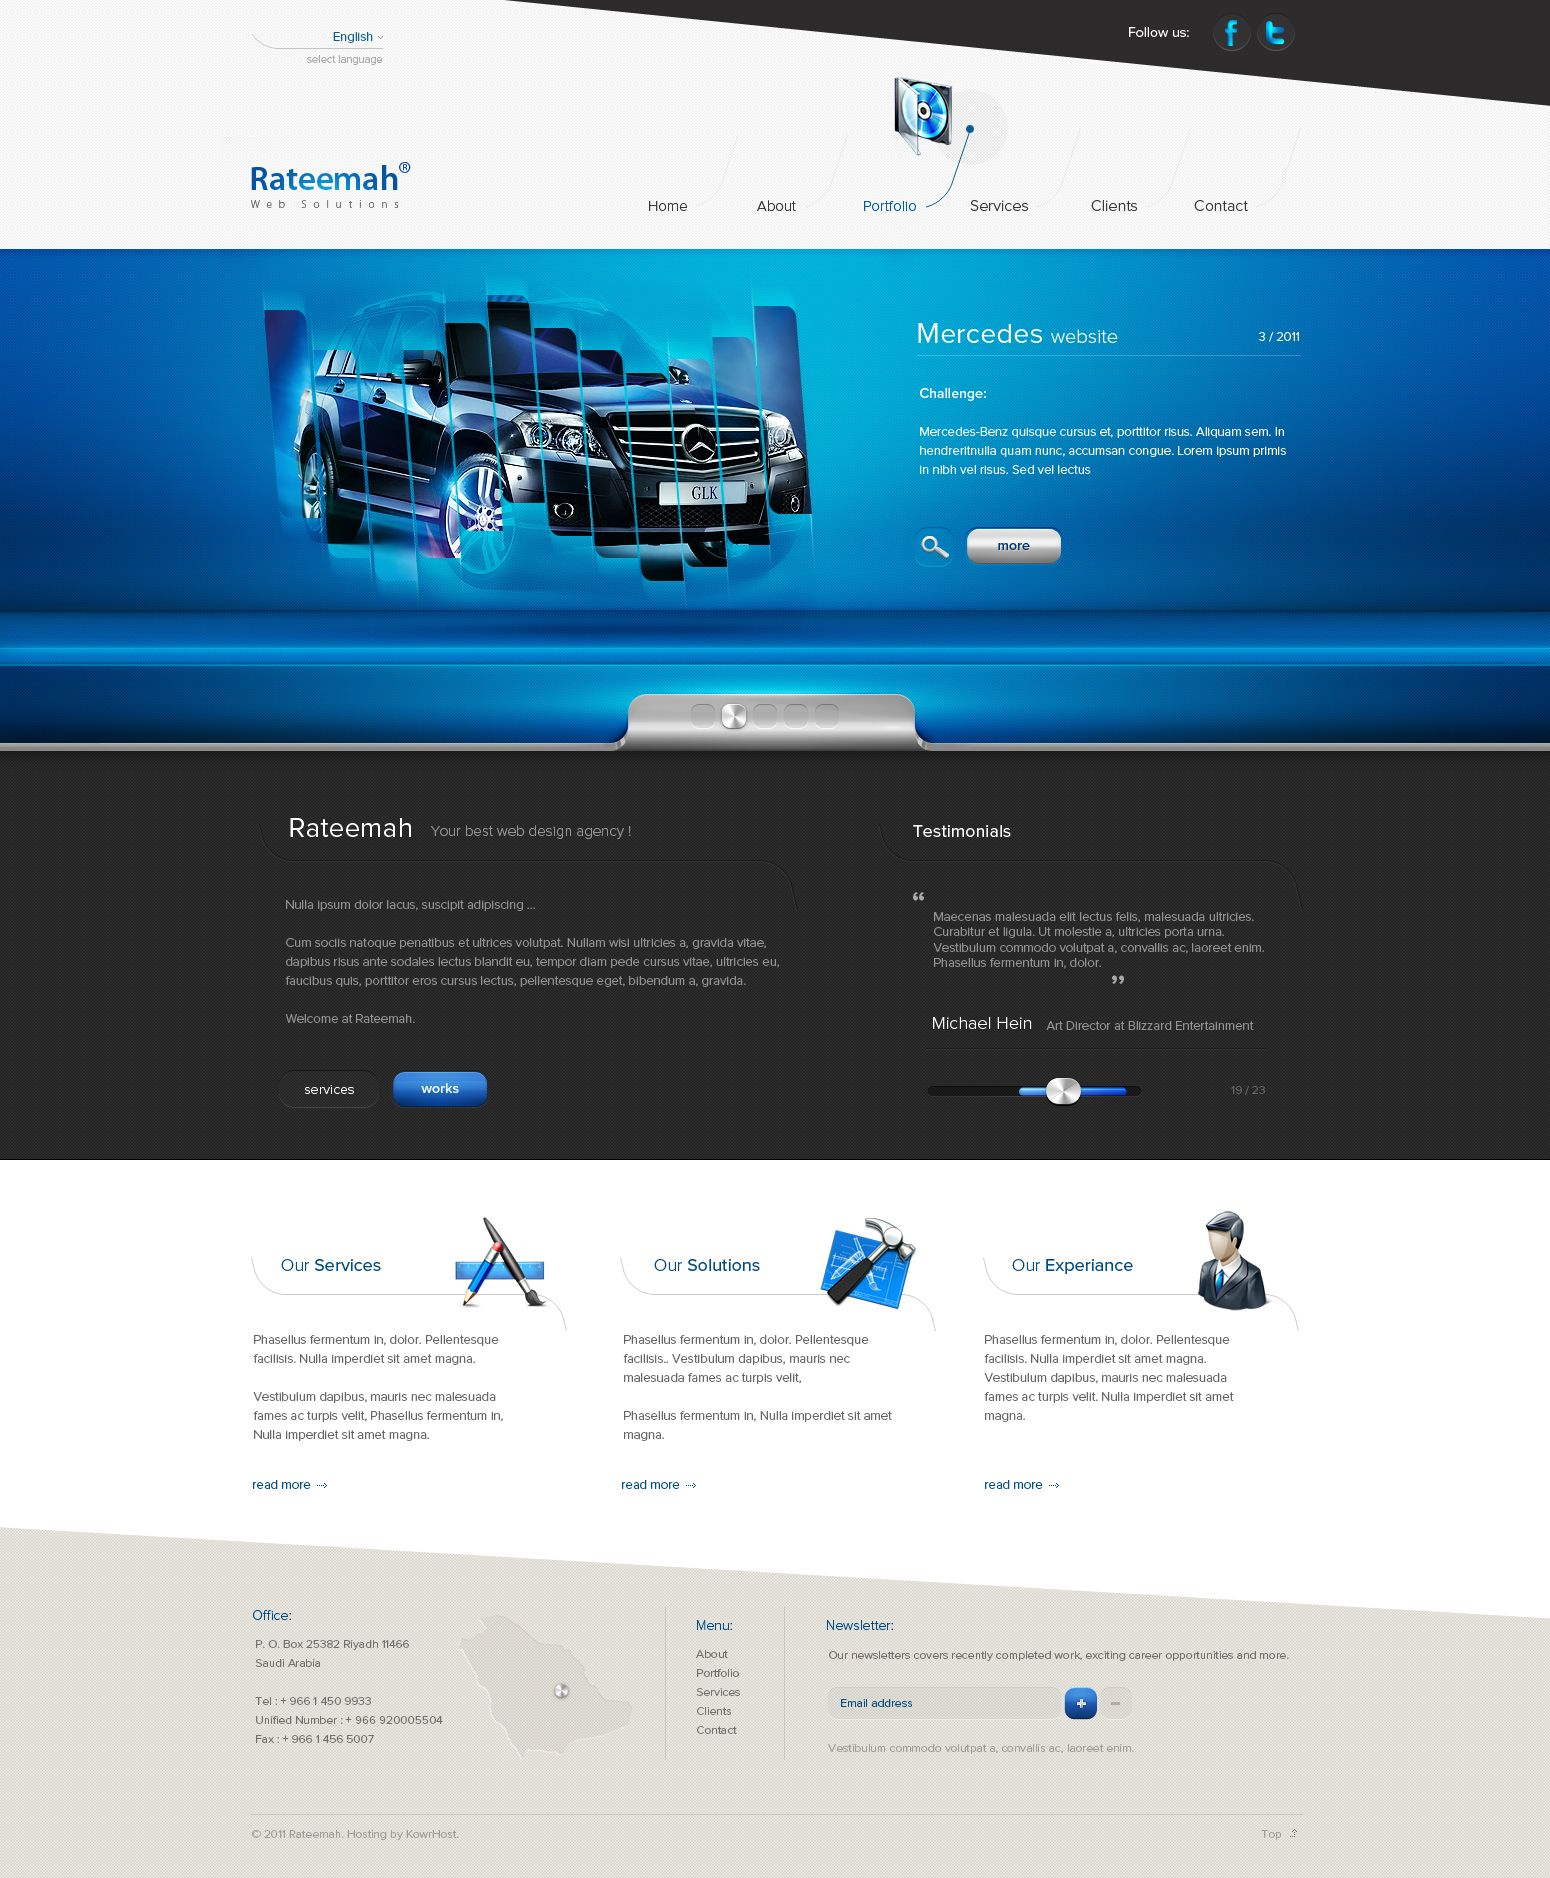 Some Site For Some Web Agency By Carl913 On Deviantart Interactive Design Web Design Web Design Inspiration